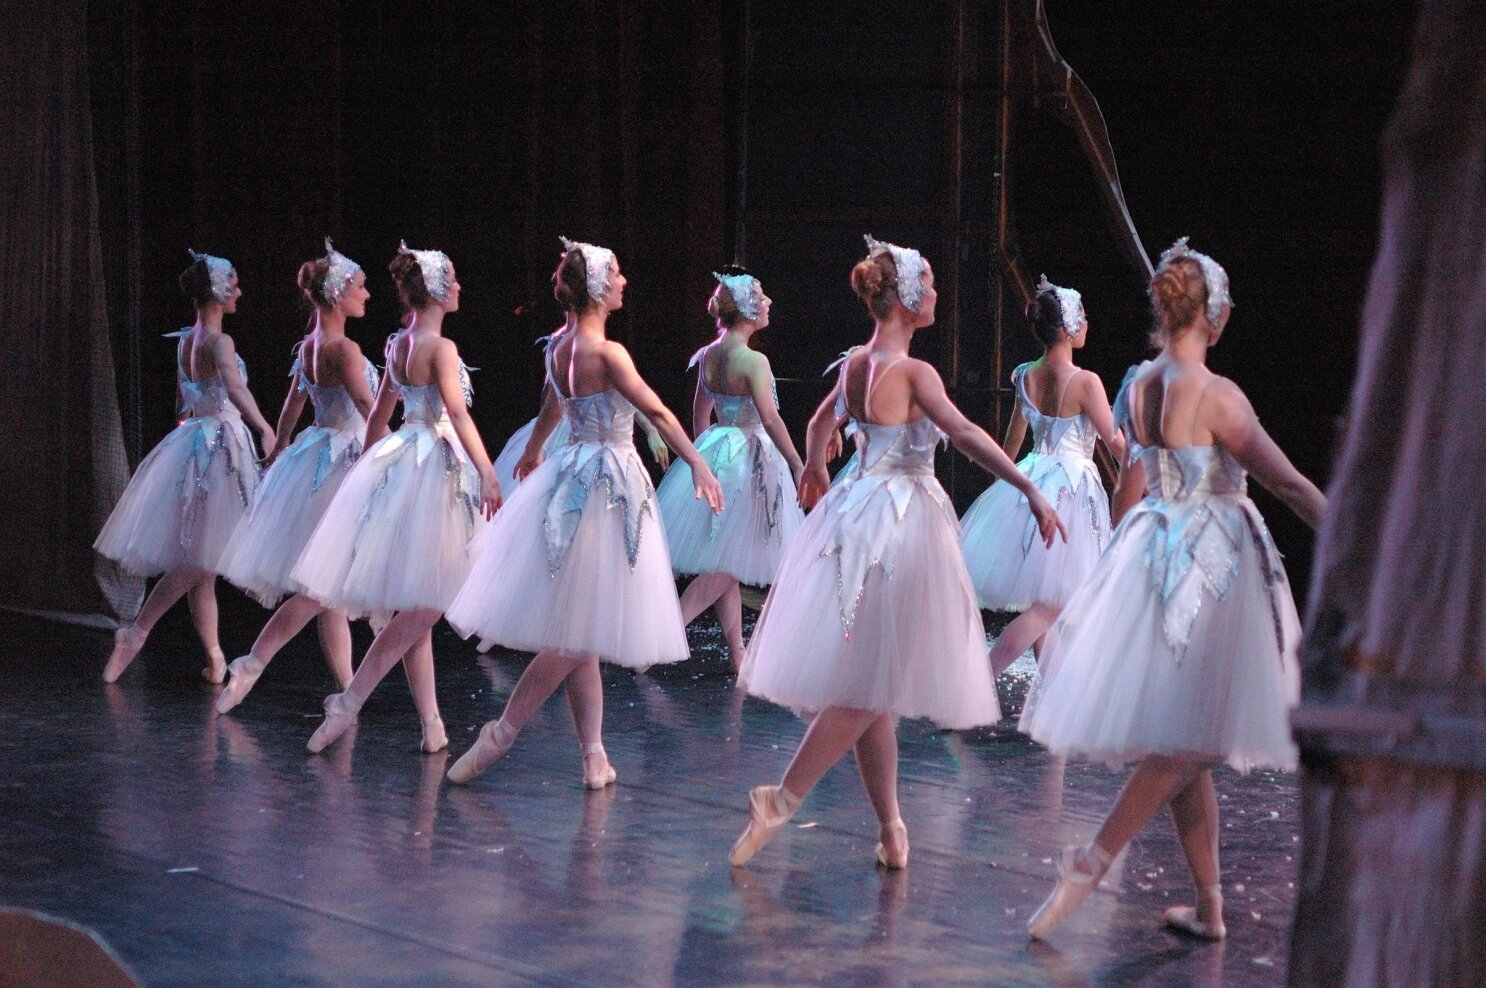 d1c4f5451a9 Hundreds of San Diegans work backstage to make  The Nutcracker  come to  life - The San Diego Union-Tribune